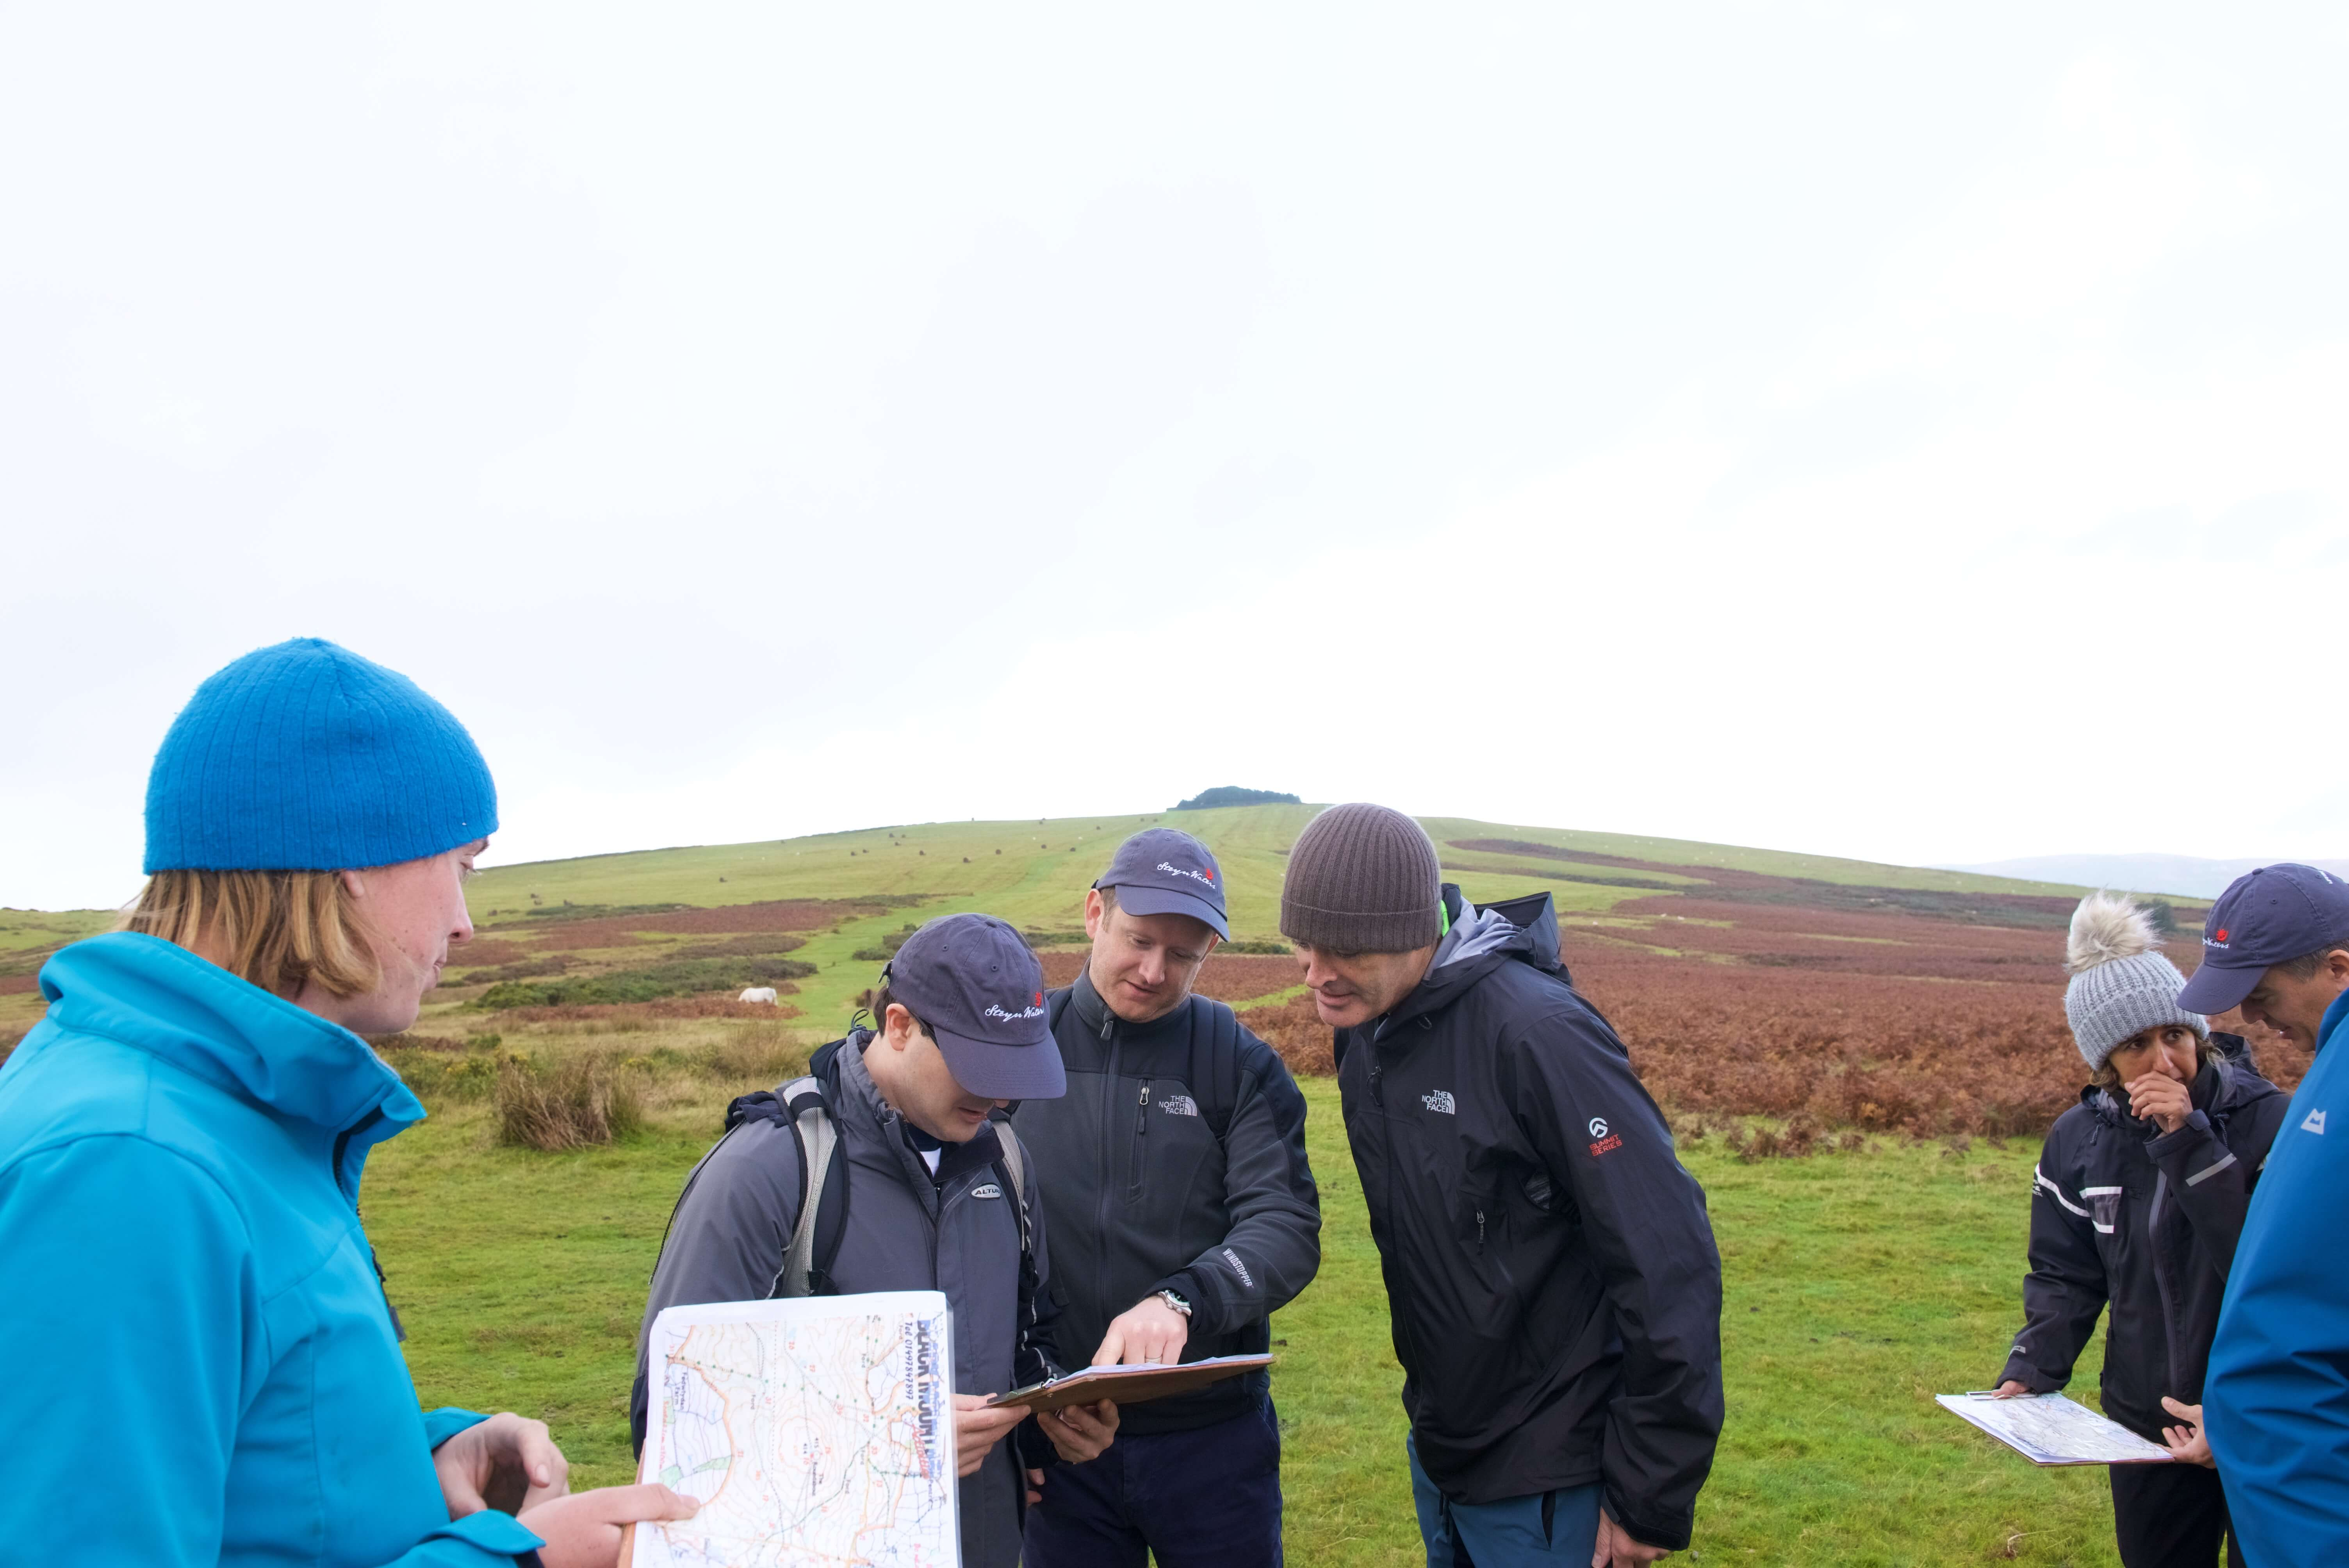 Leadership conference and orienteering in the Welsh Mountains